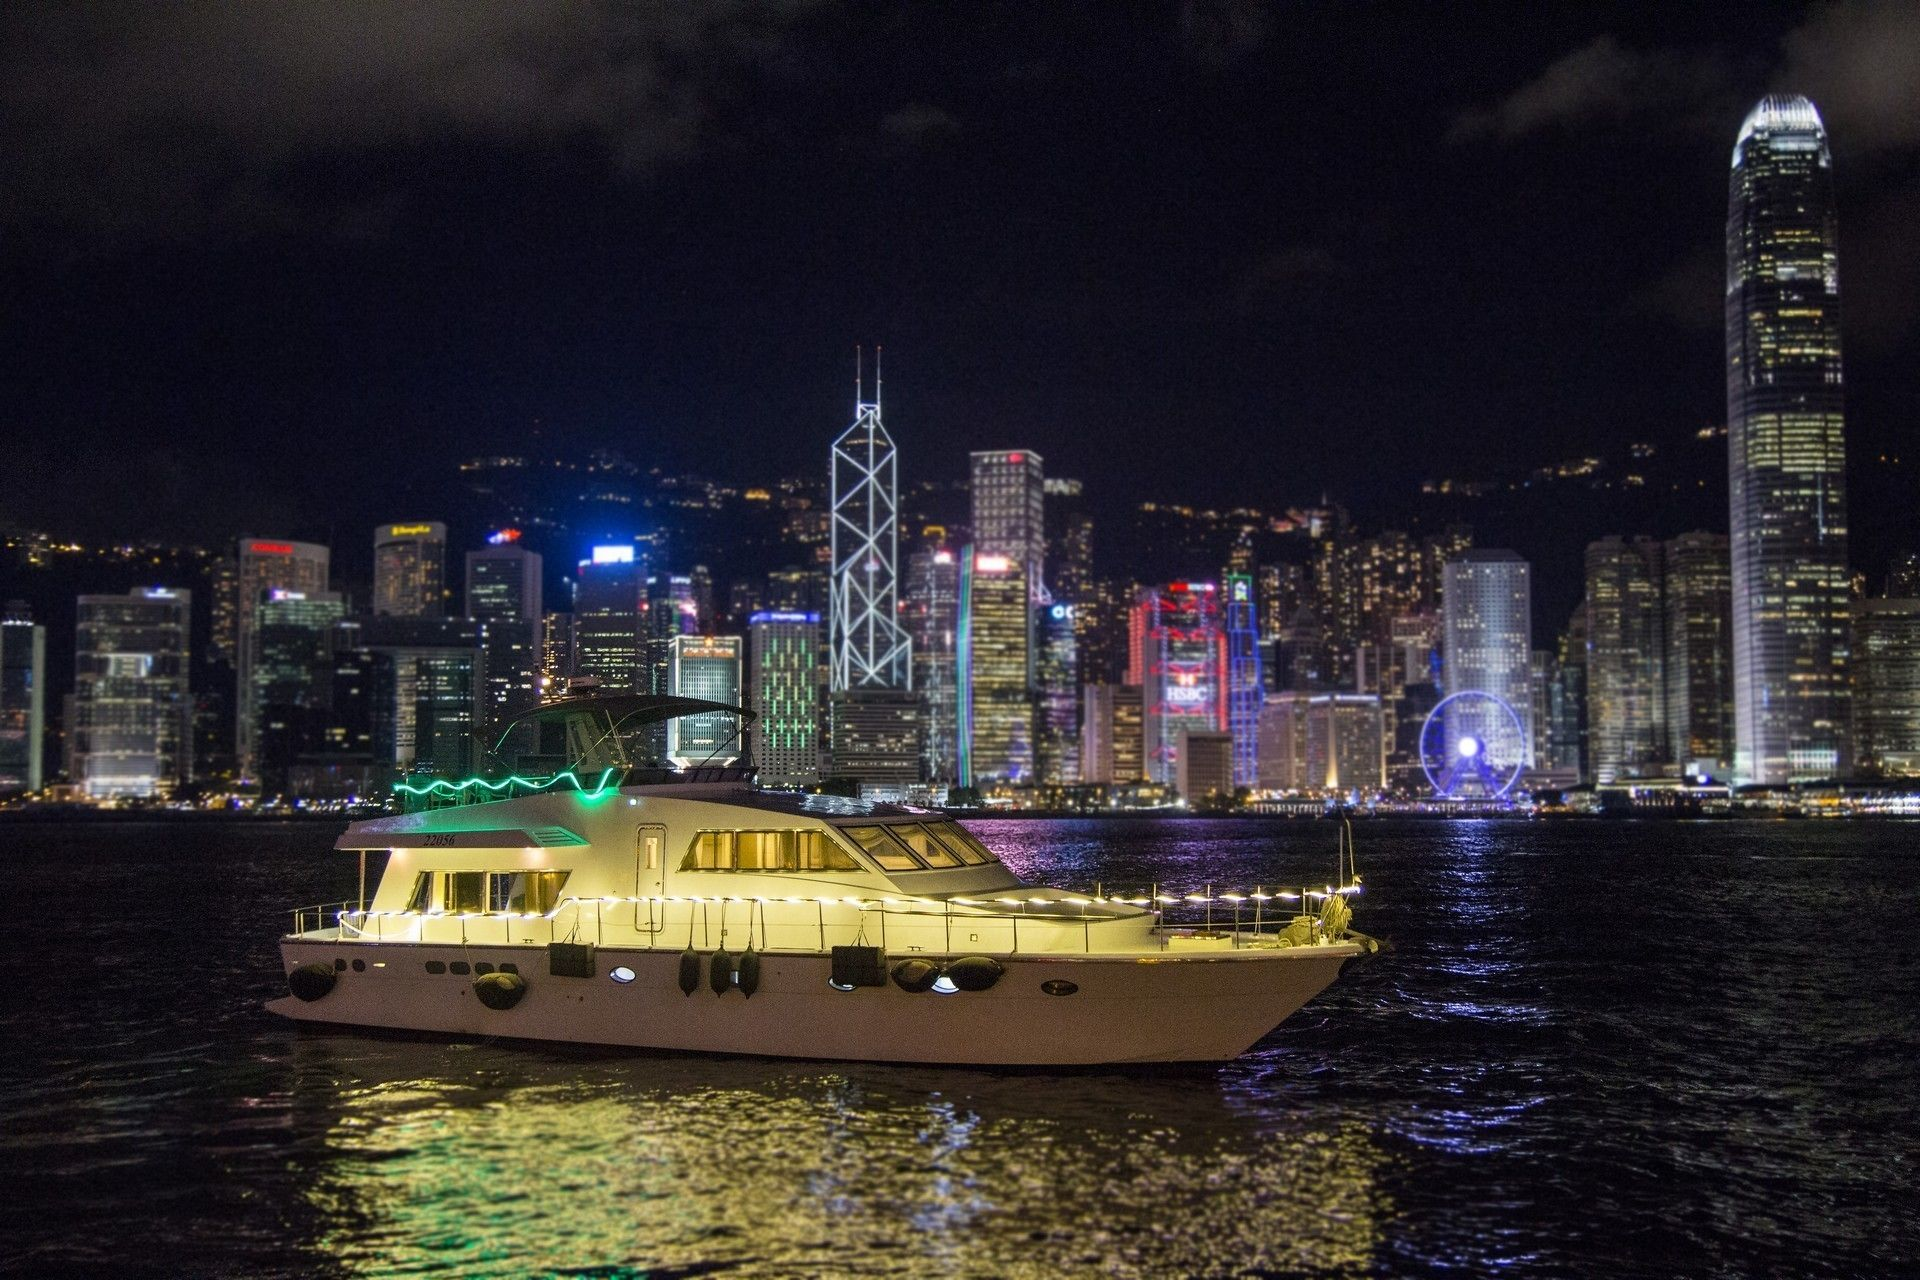 Victoria Harbour Night Hop-on Hop-off Yacht Cruise